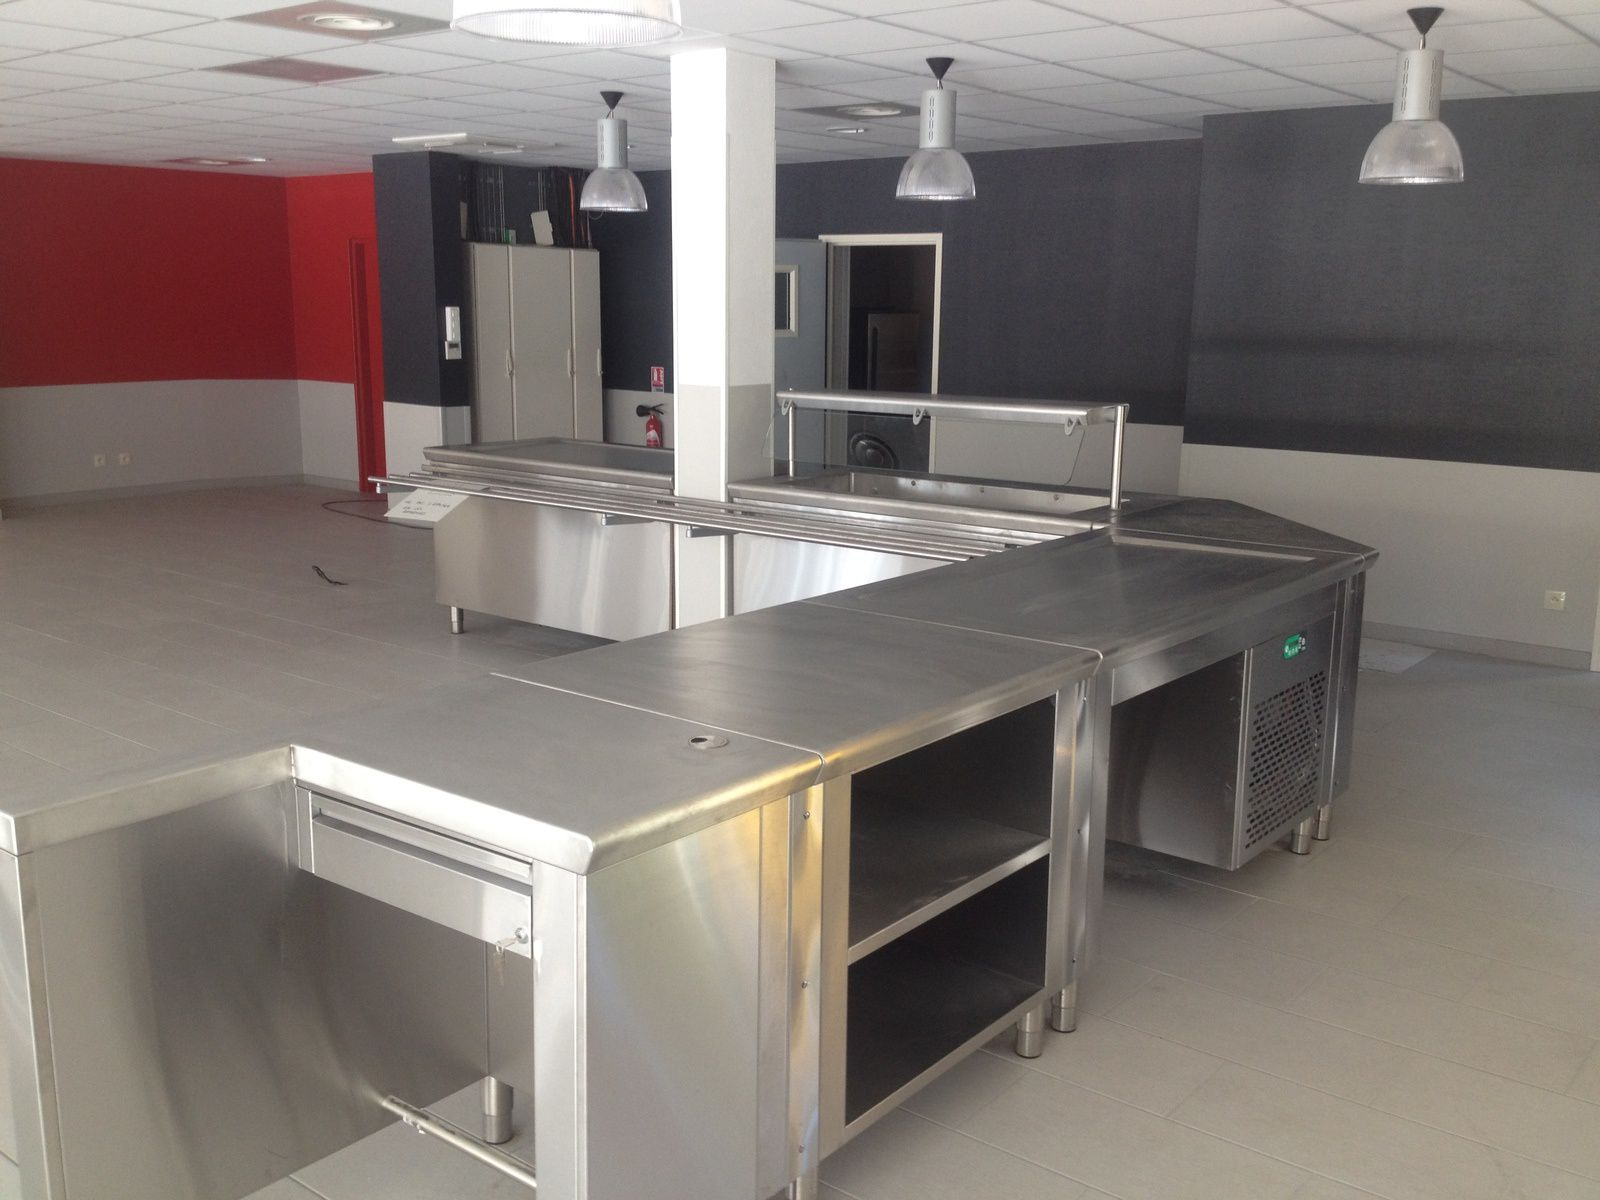 Realisation 2014 self hullo froid specialiste cuisine et for Installateur cuisine professionnelle